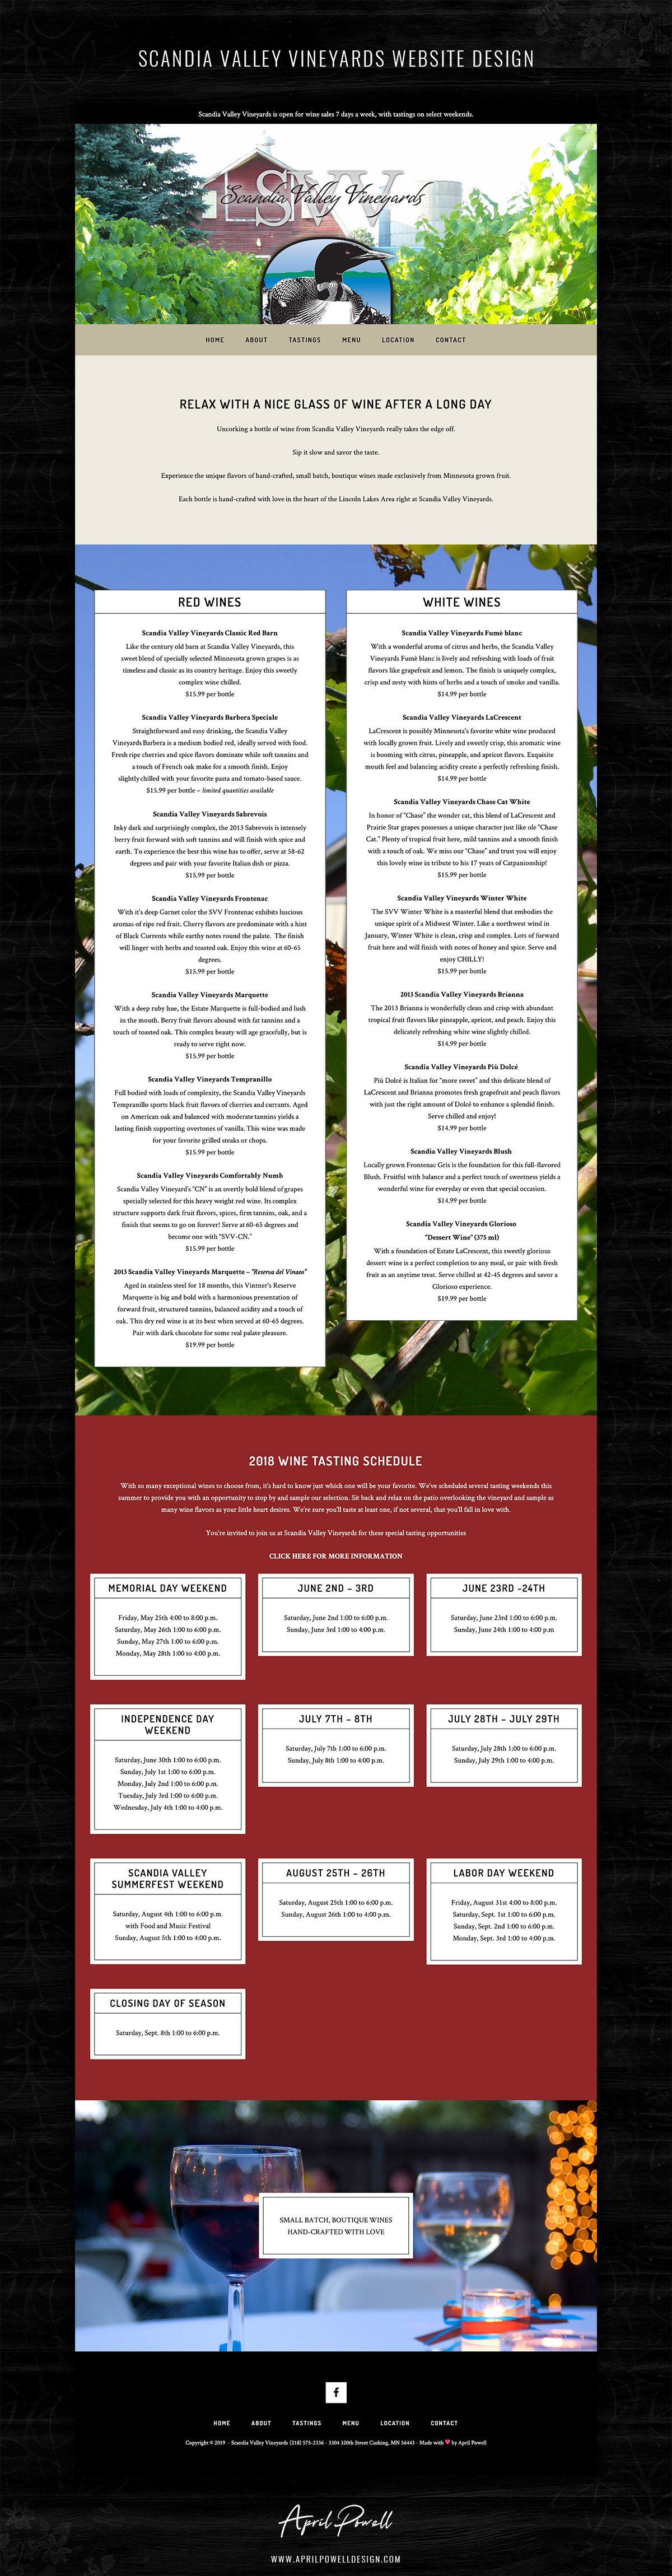 website design for winery from branding and design portfolio